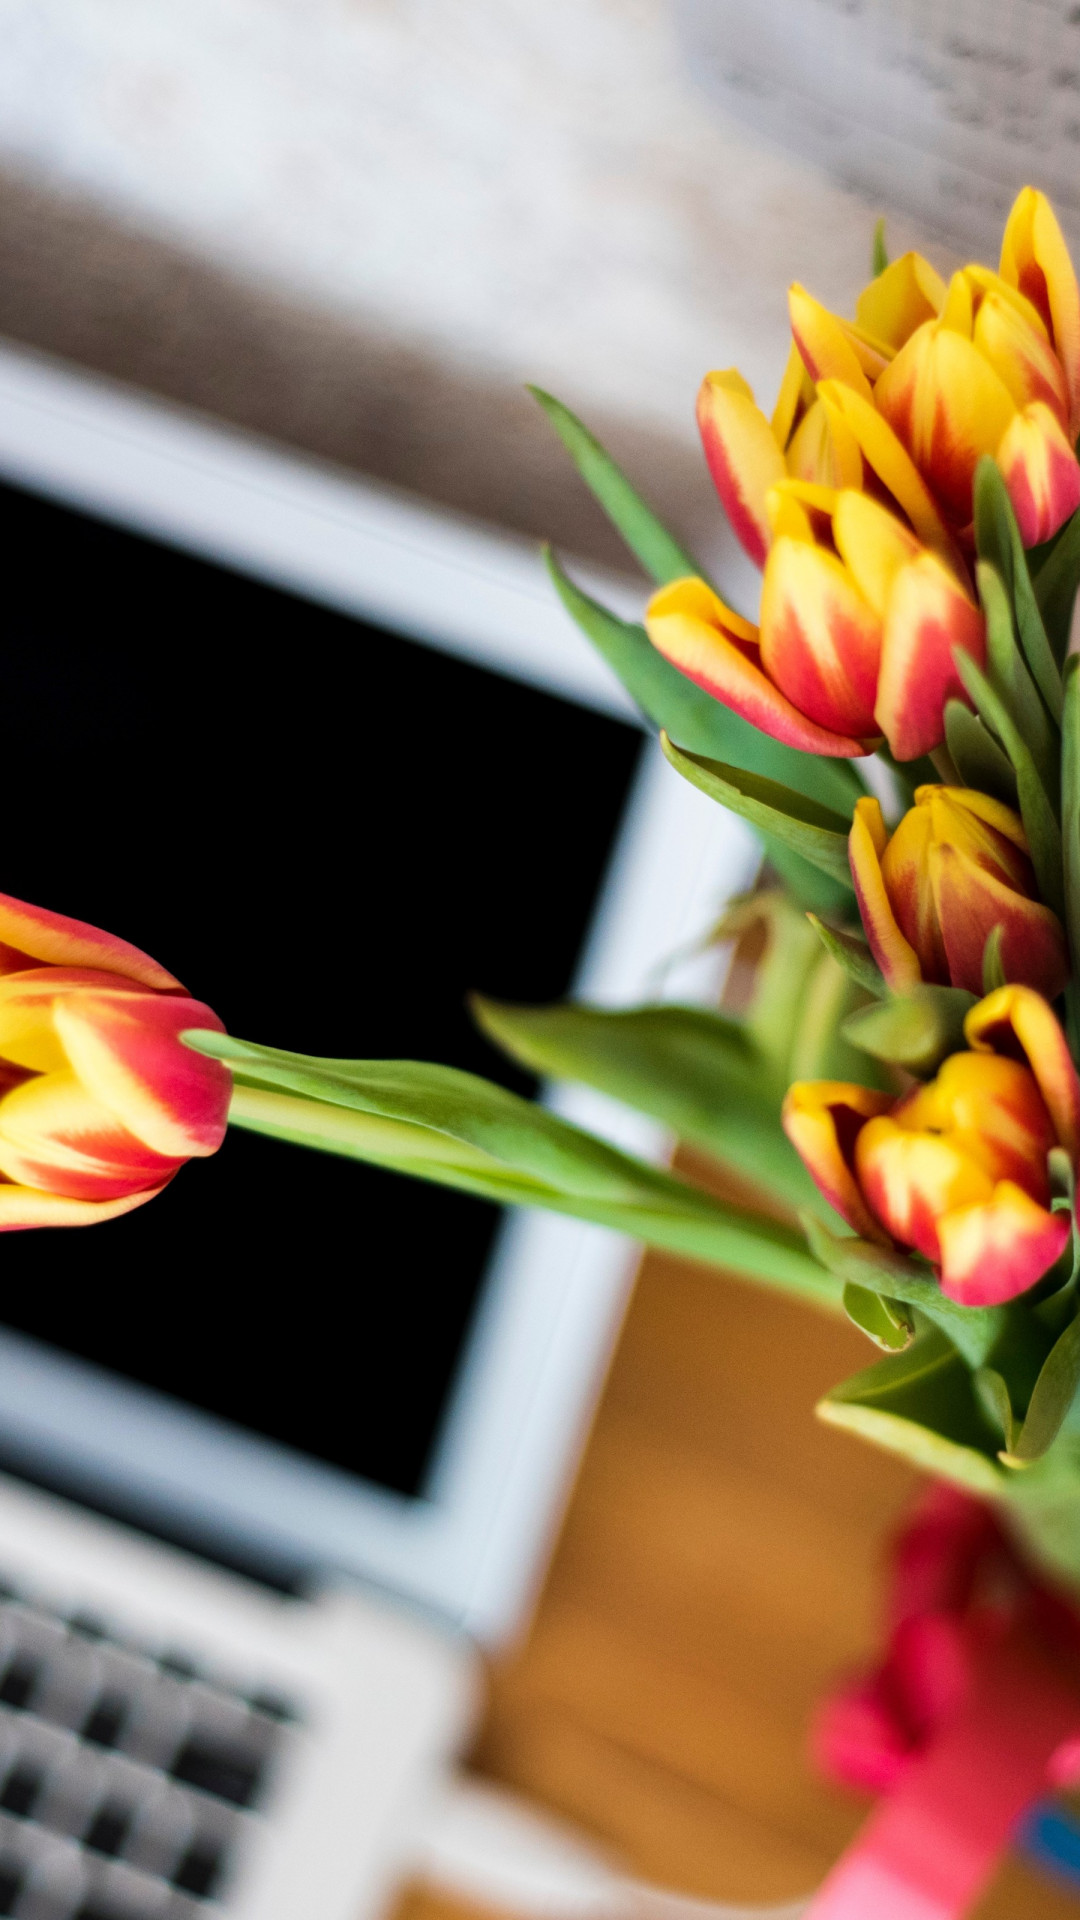 Laptop and tulips bouquet wallpaper 1080x1920